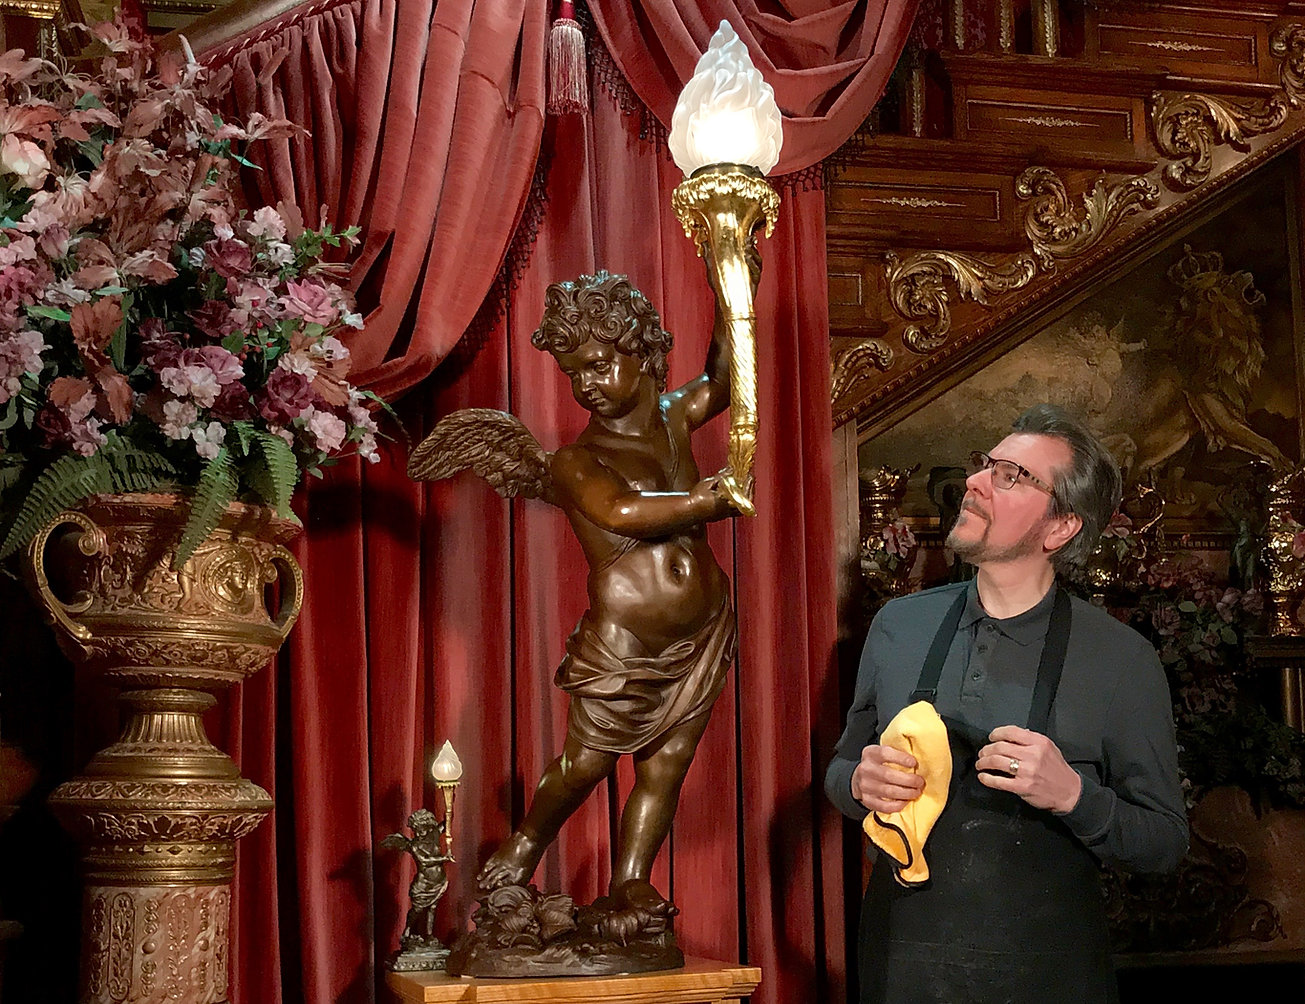 Titanic sculptor Alan St George and his finished full-sized bronze cherub lamp replica with 24 karat gold torch. The tiny scale model on the left was completed 8 months earlier to prepare for the large sculpture.